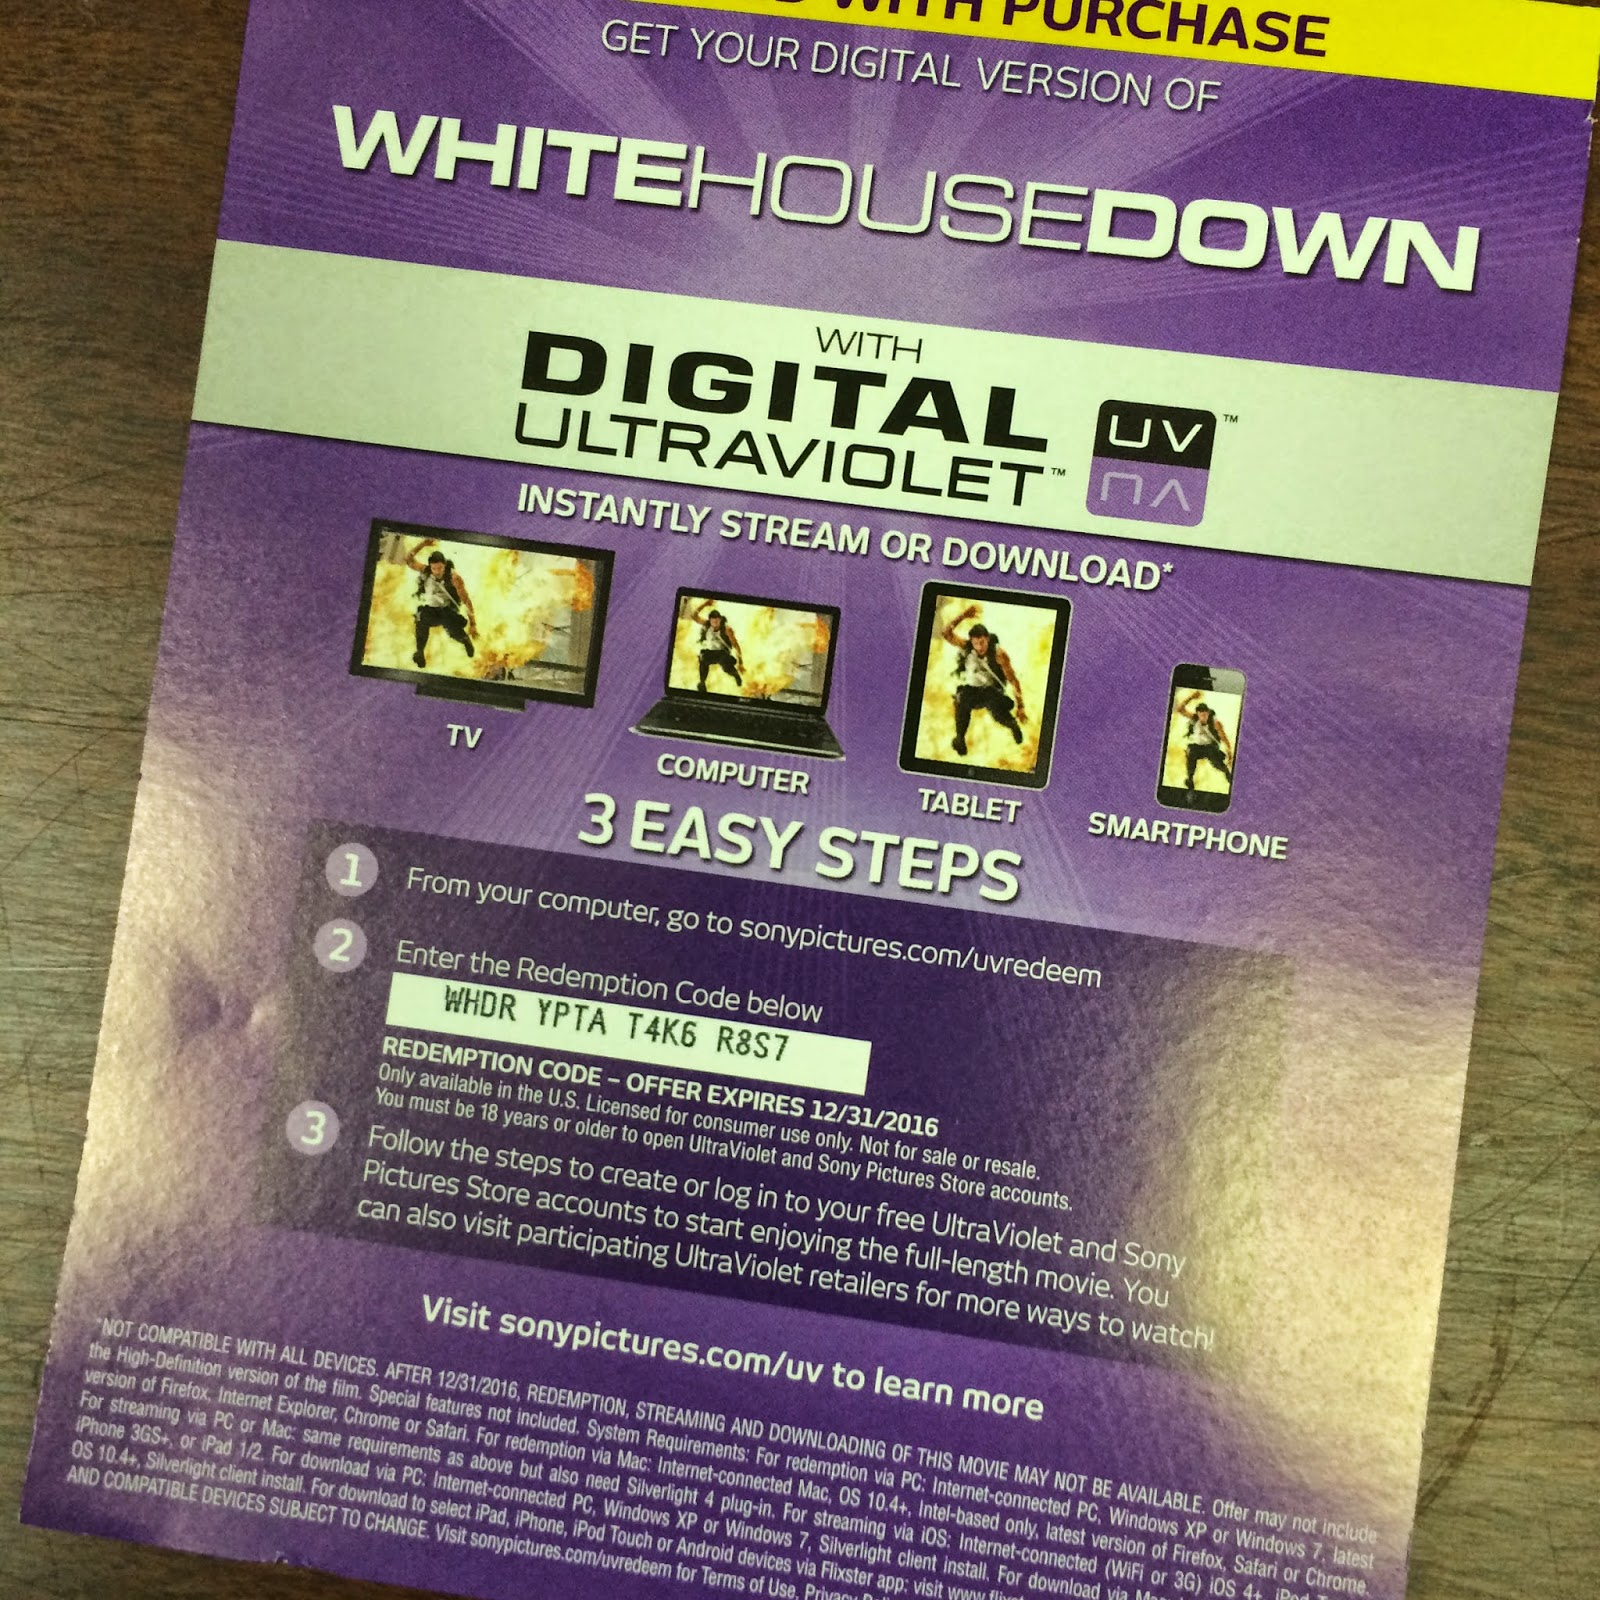 Cinema Sickness Free White House Down UltraViolet Code